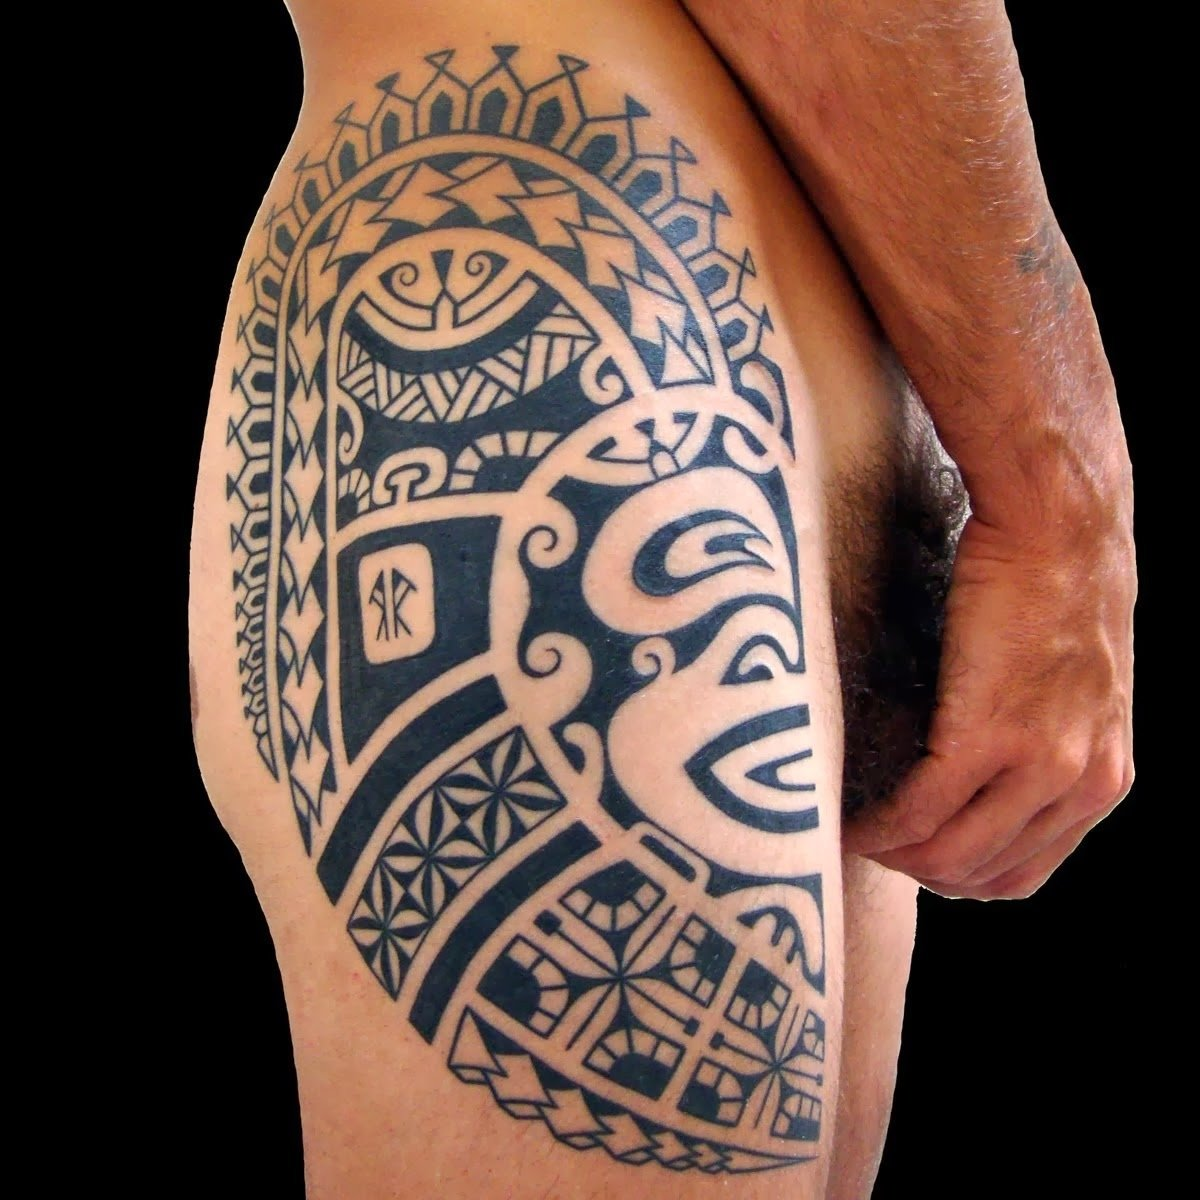 10 Most Recommended Tattoo Ideas For Kids Names For Men